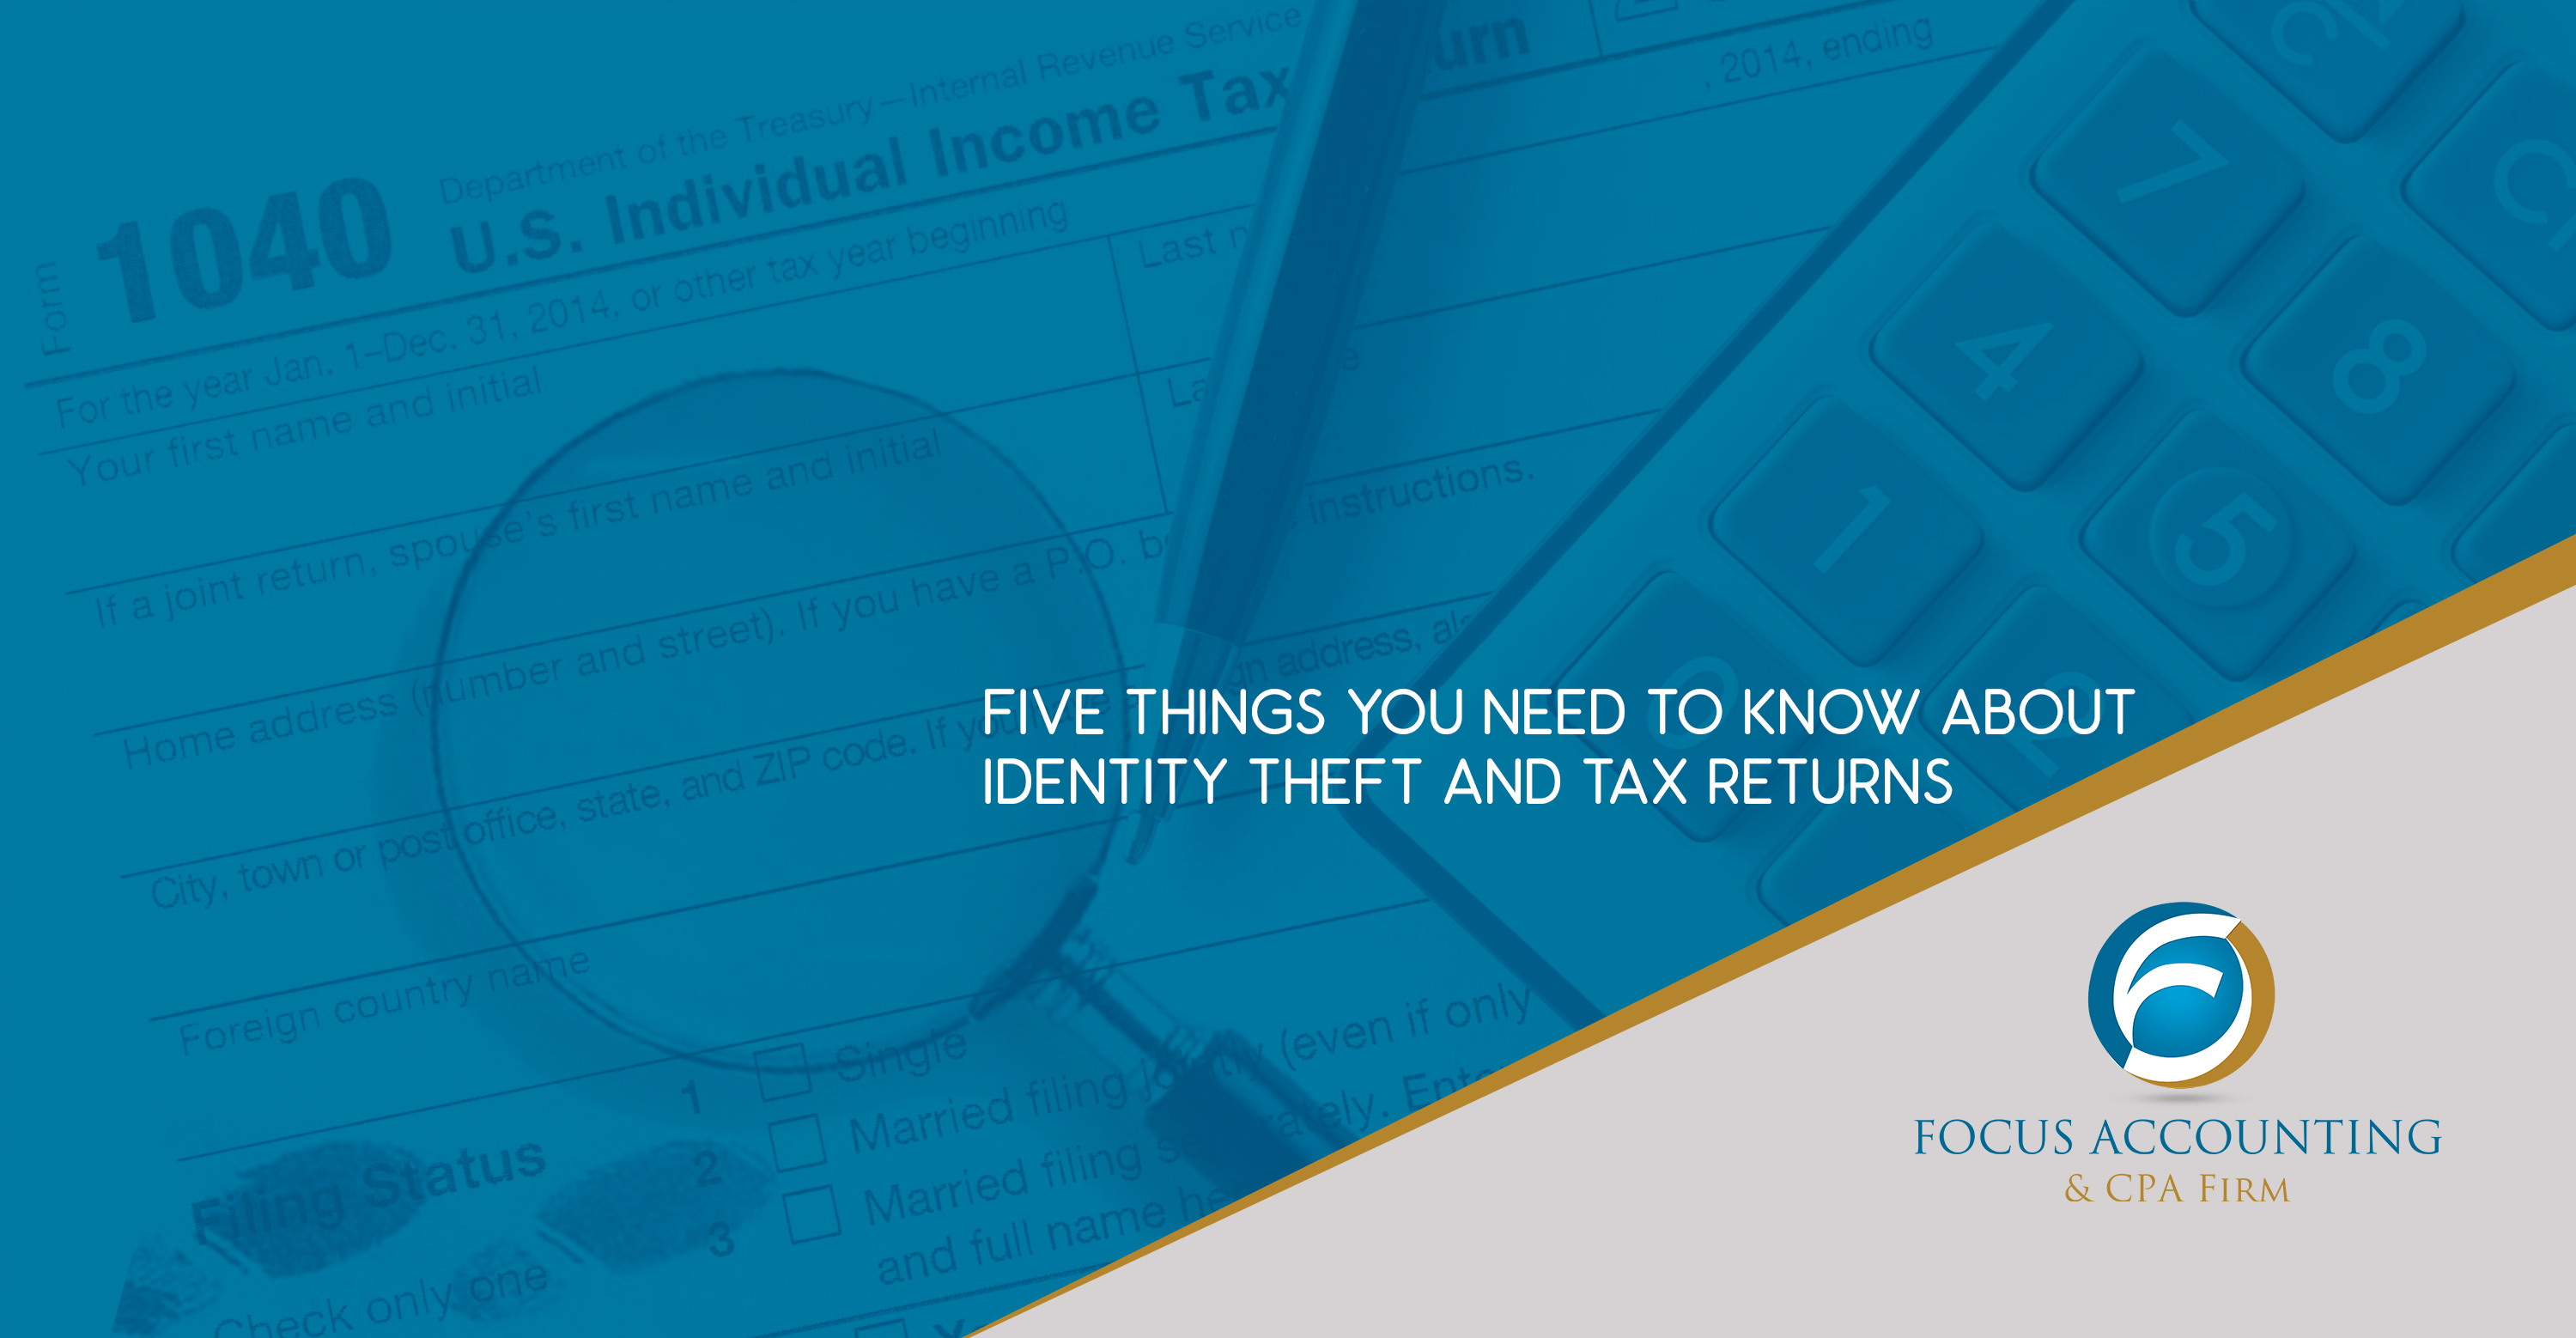 Five Things You Need to Know about Identity Theft and Tax Returns